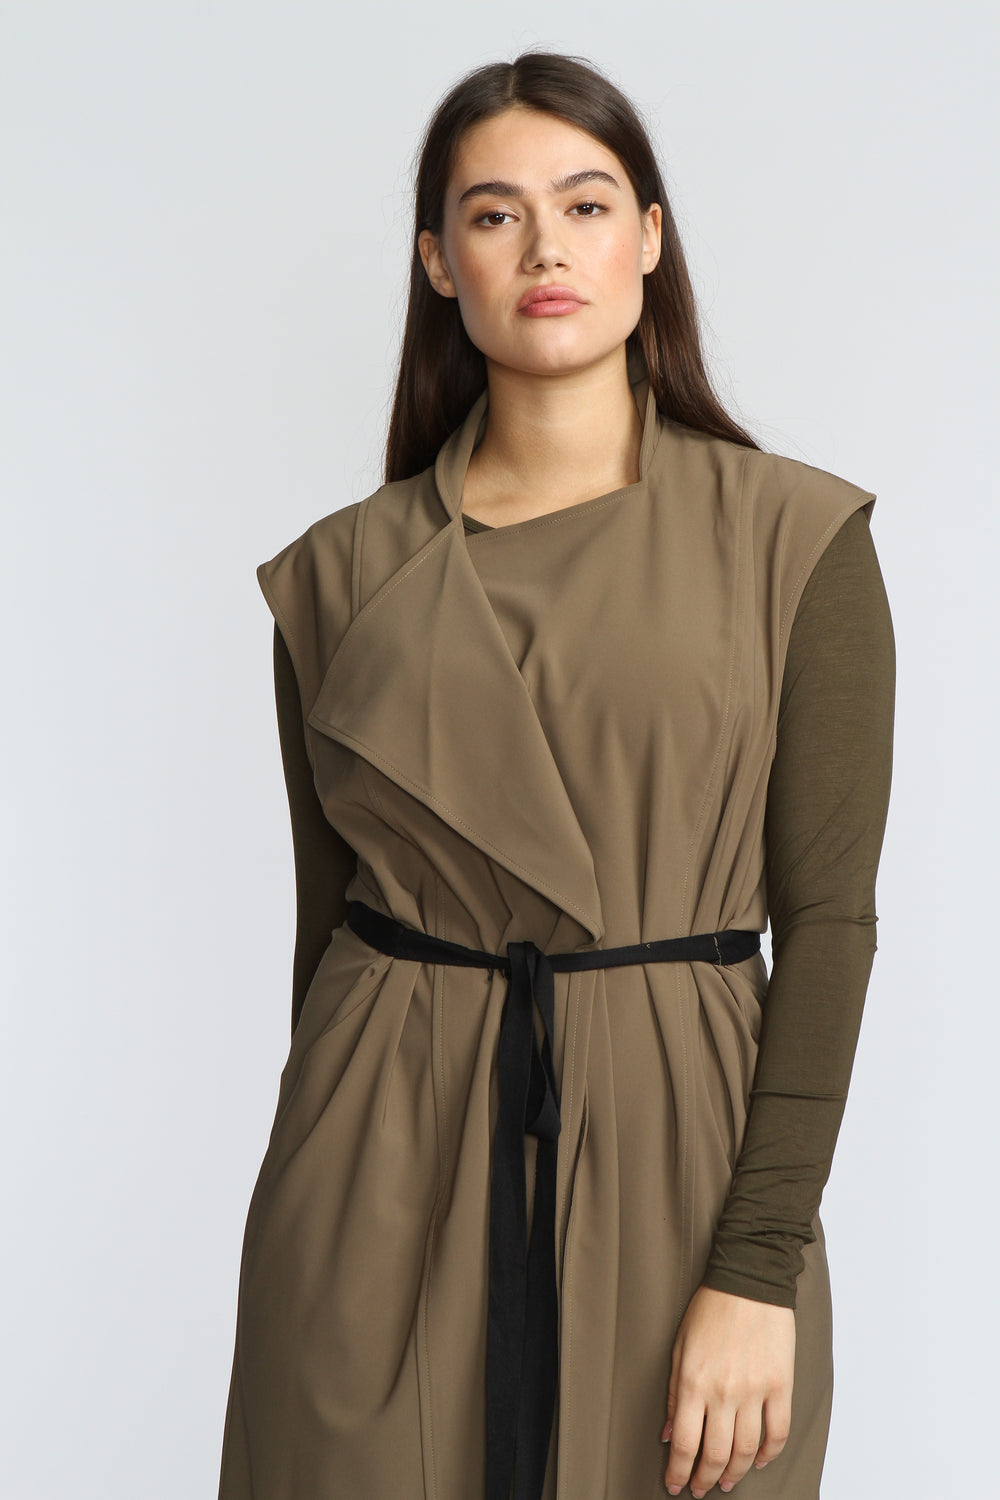 The Vest Dress - Khaki - The Frock NYC